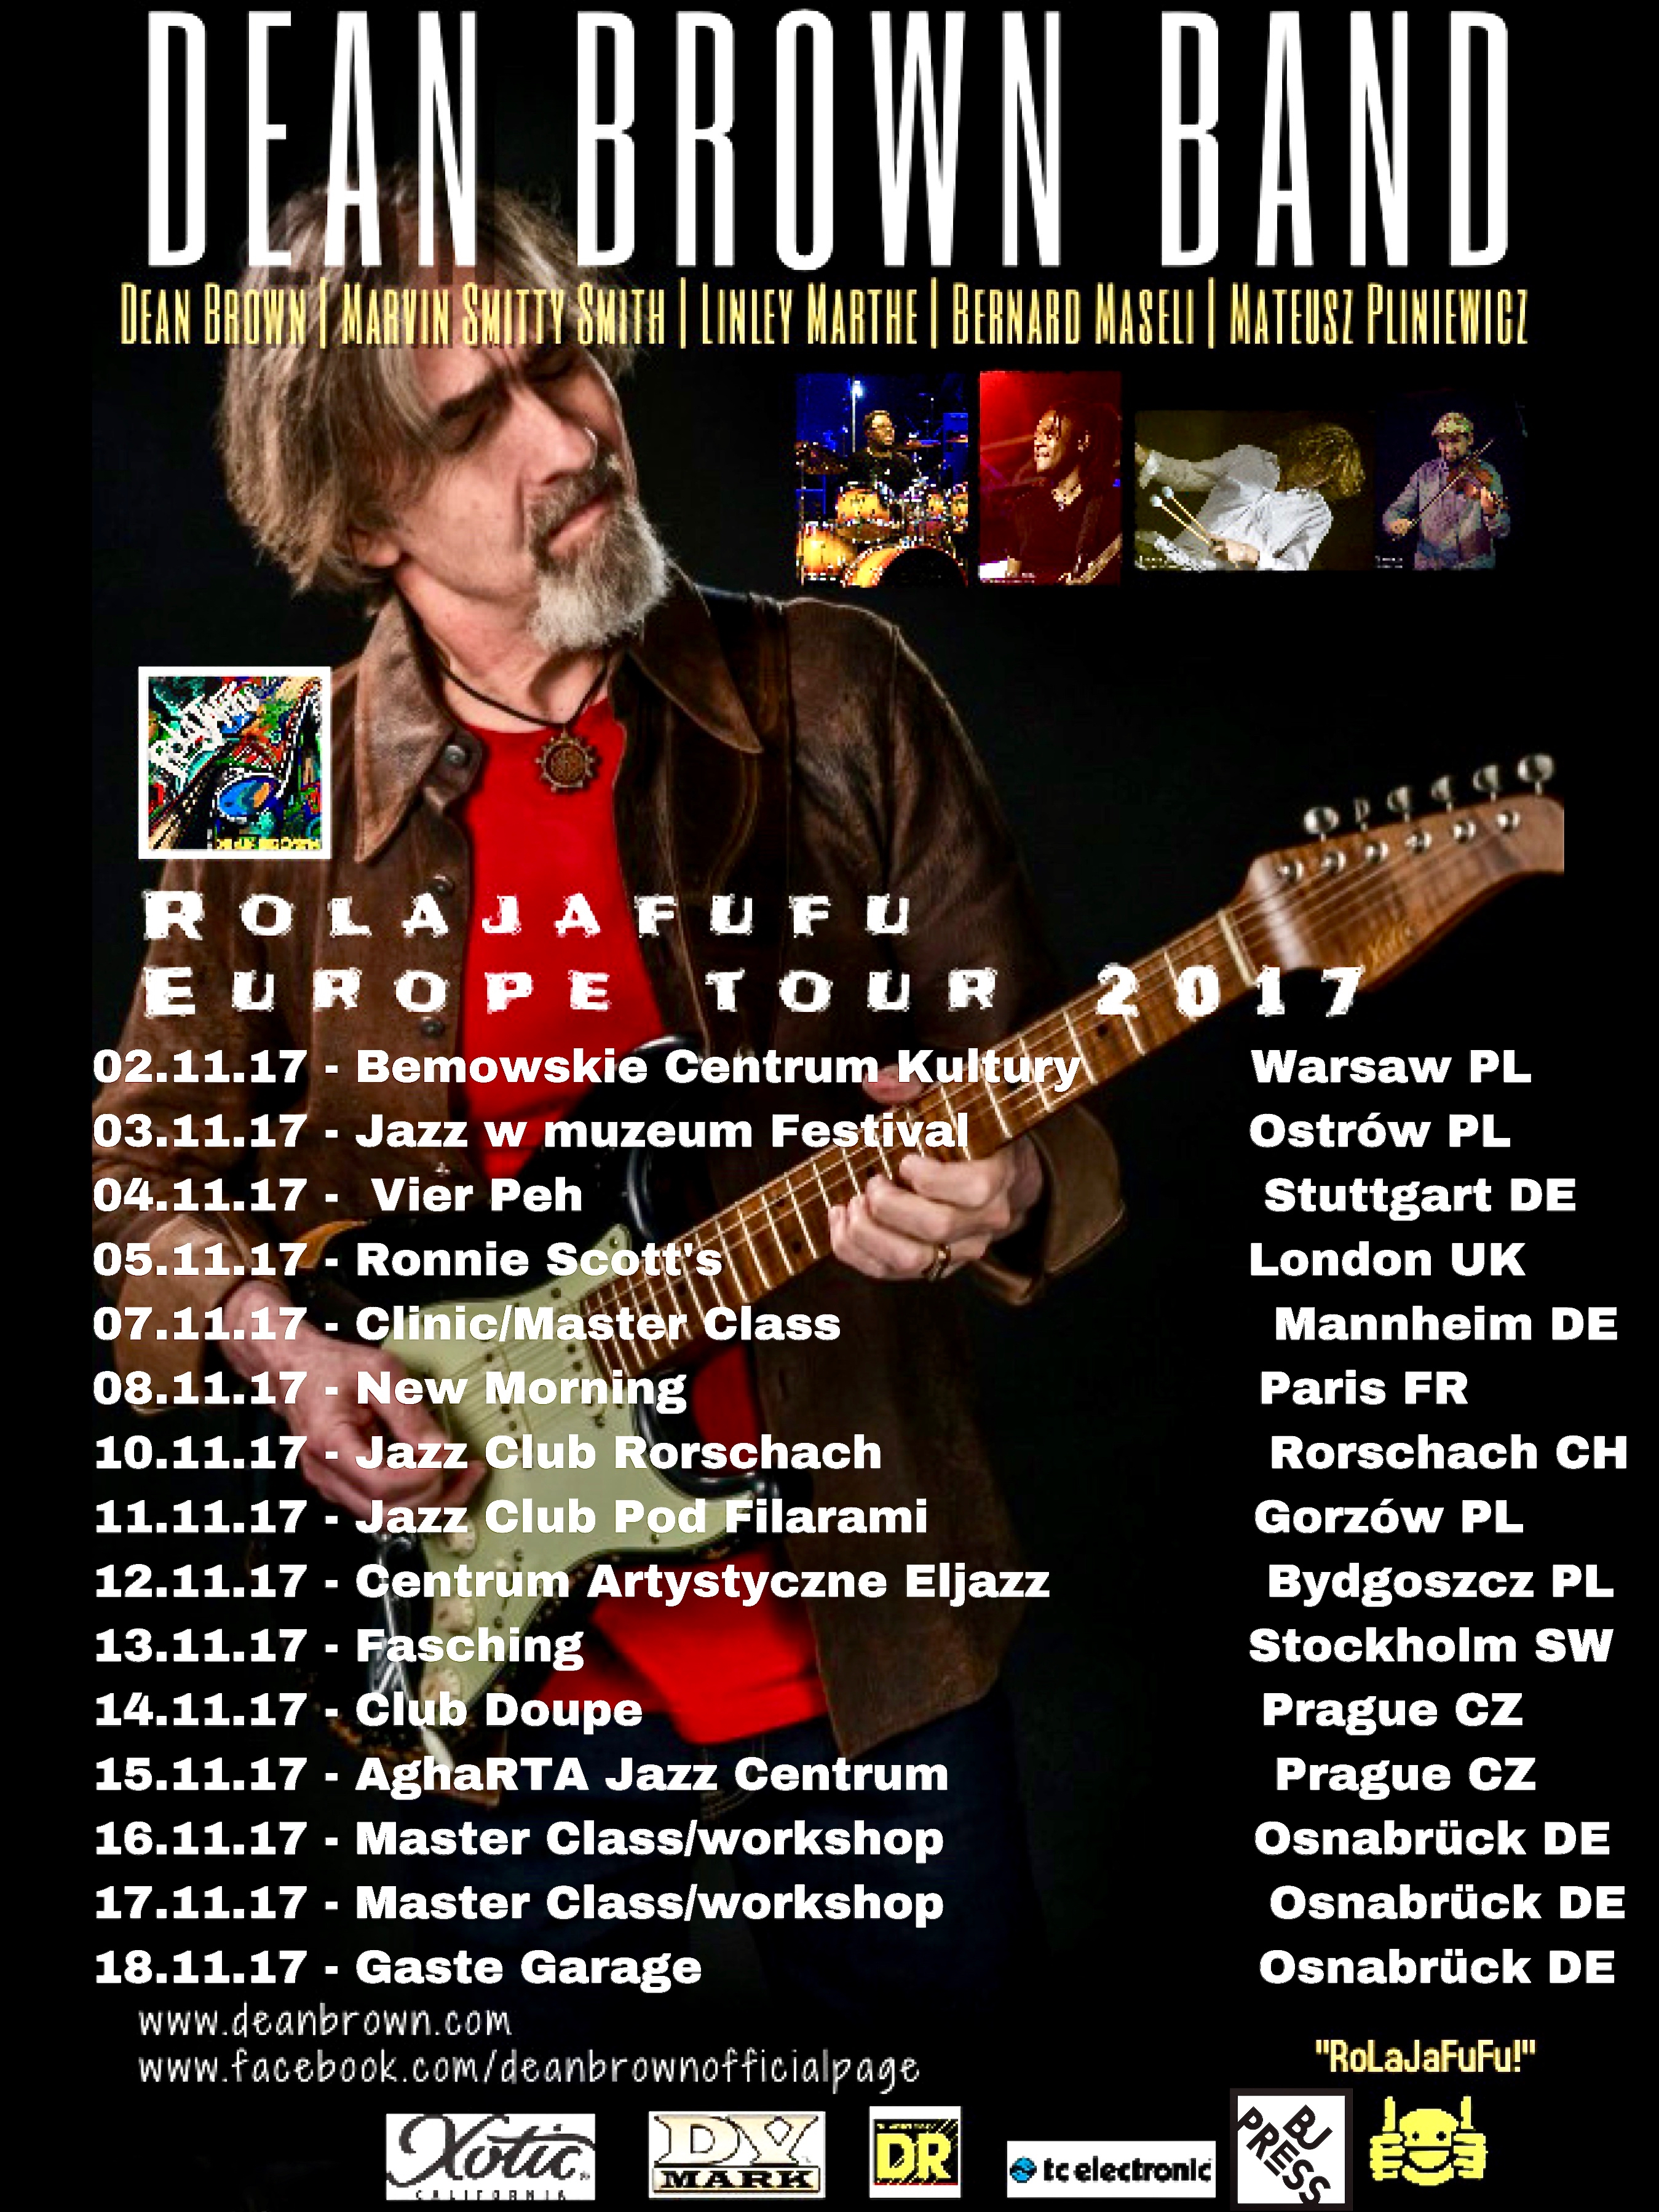 Just Announced! The Dean Brown Band ROLAJAFUFU Fall Tour 2017